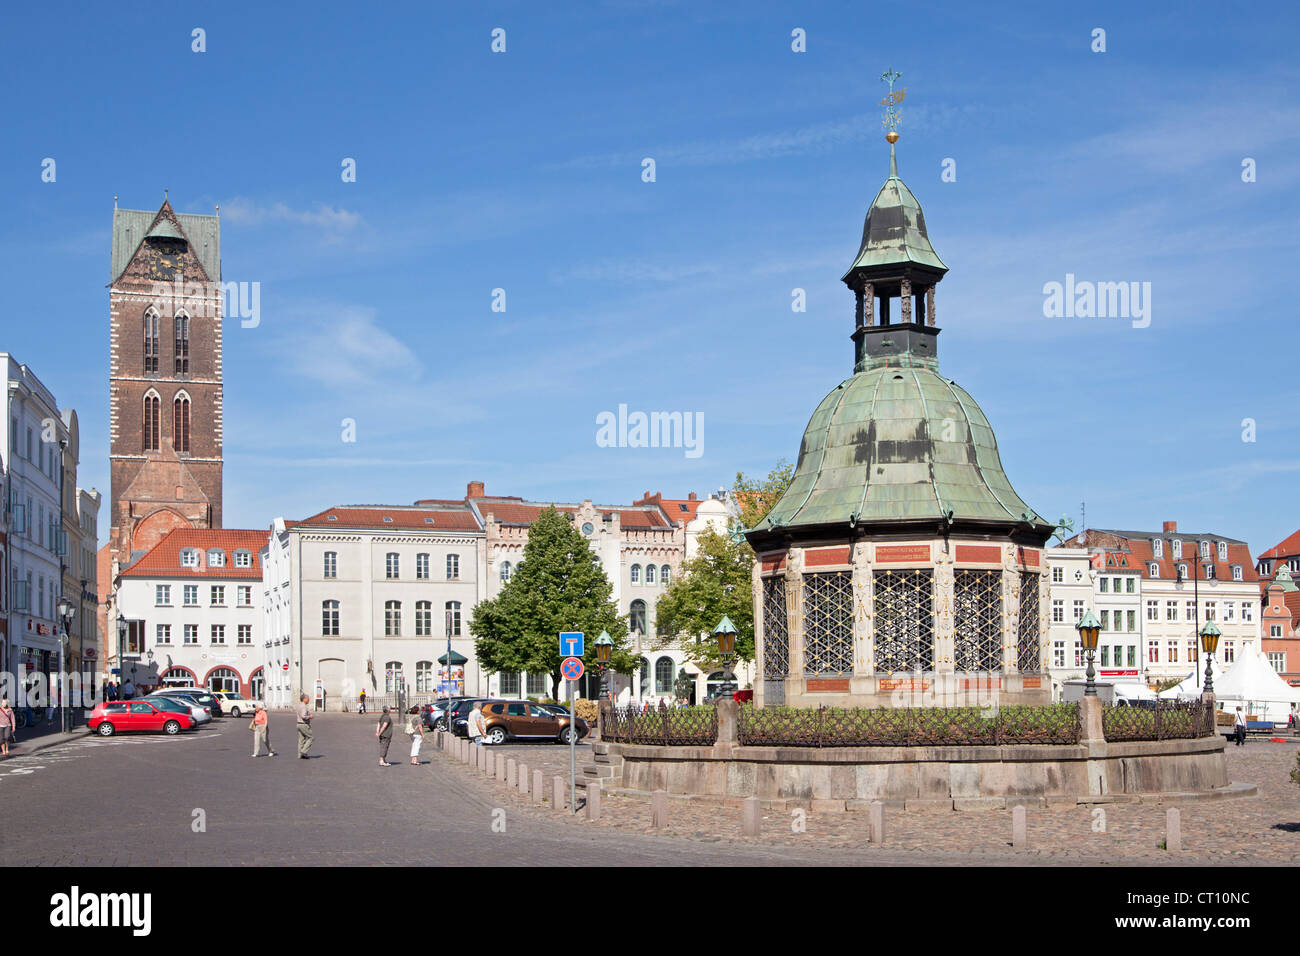 Church Tower of St.Marien and market square with Wasserkunst, Wismar, Mecklenburg-West Pomerania, Germany - Stock Image